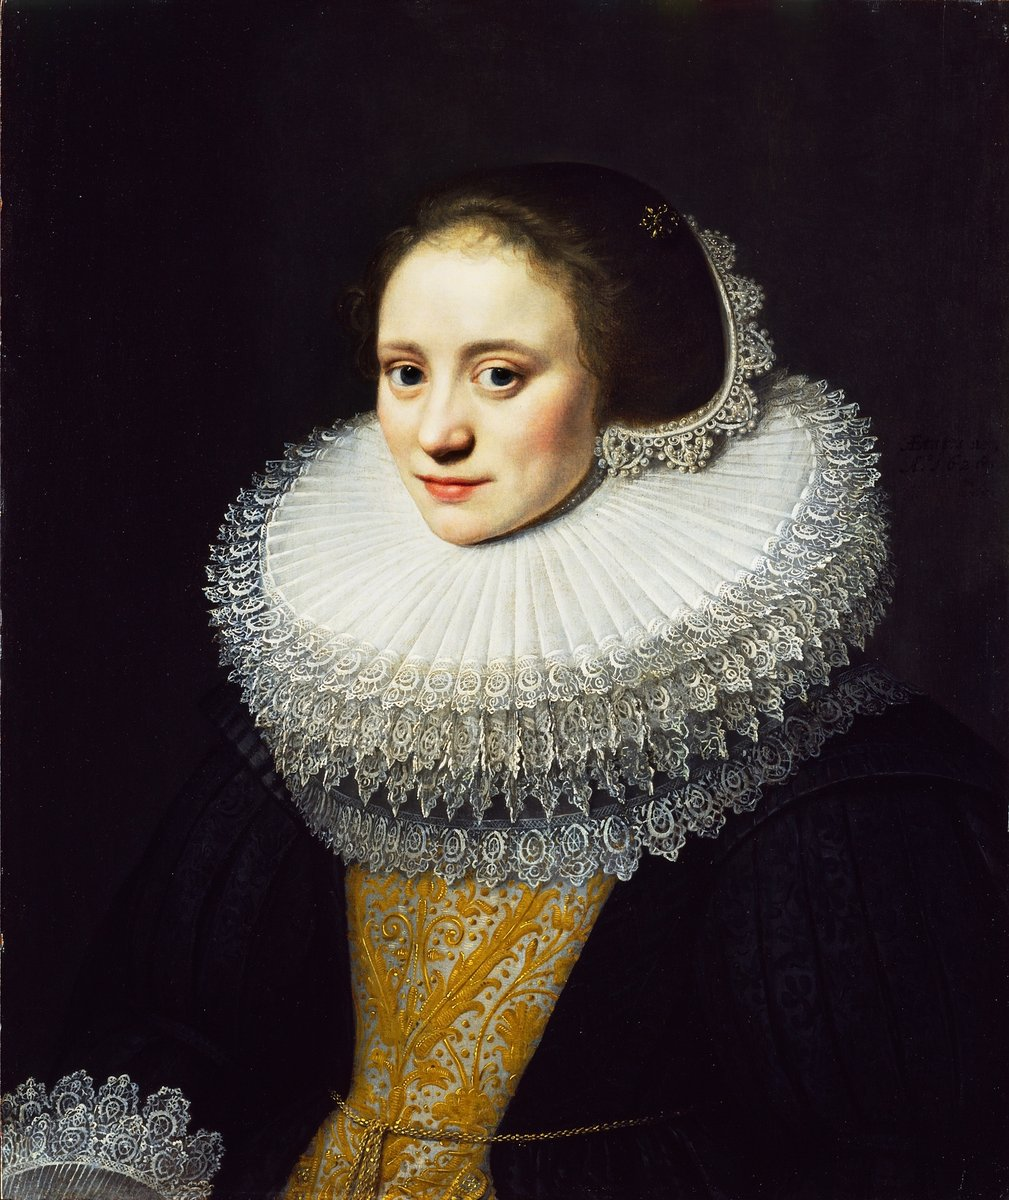 This striking ruff (and portrait) is by the Dutch painter #MichielJanszvanMierevelt.  Dated 1628, this portrait shows the precise style for which the artist became well-known. The sitter's dark dress, lavish bodice and ruff are typical of early #17thcentury Netherlandish dress. <br>http://pic.twitter.com/dKUYrP87Gs